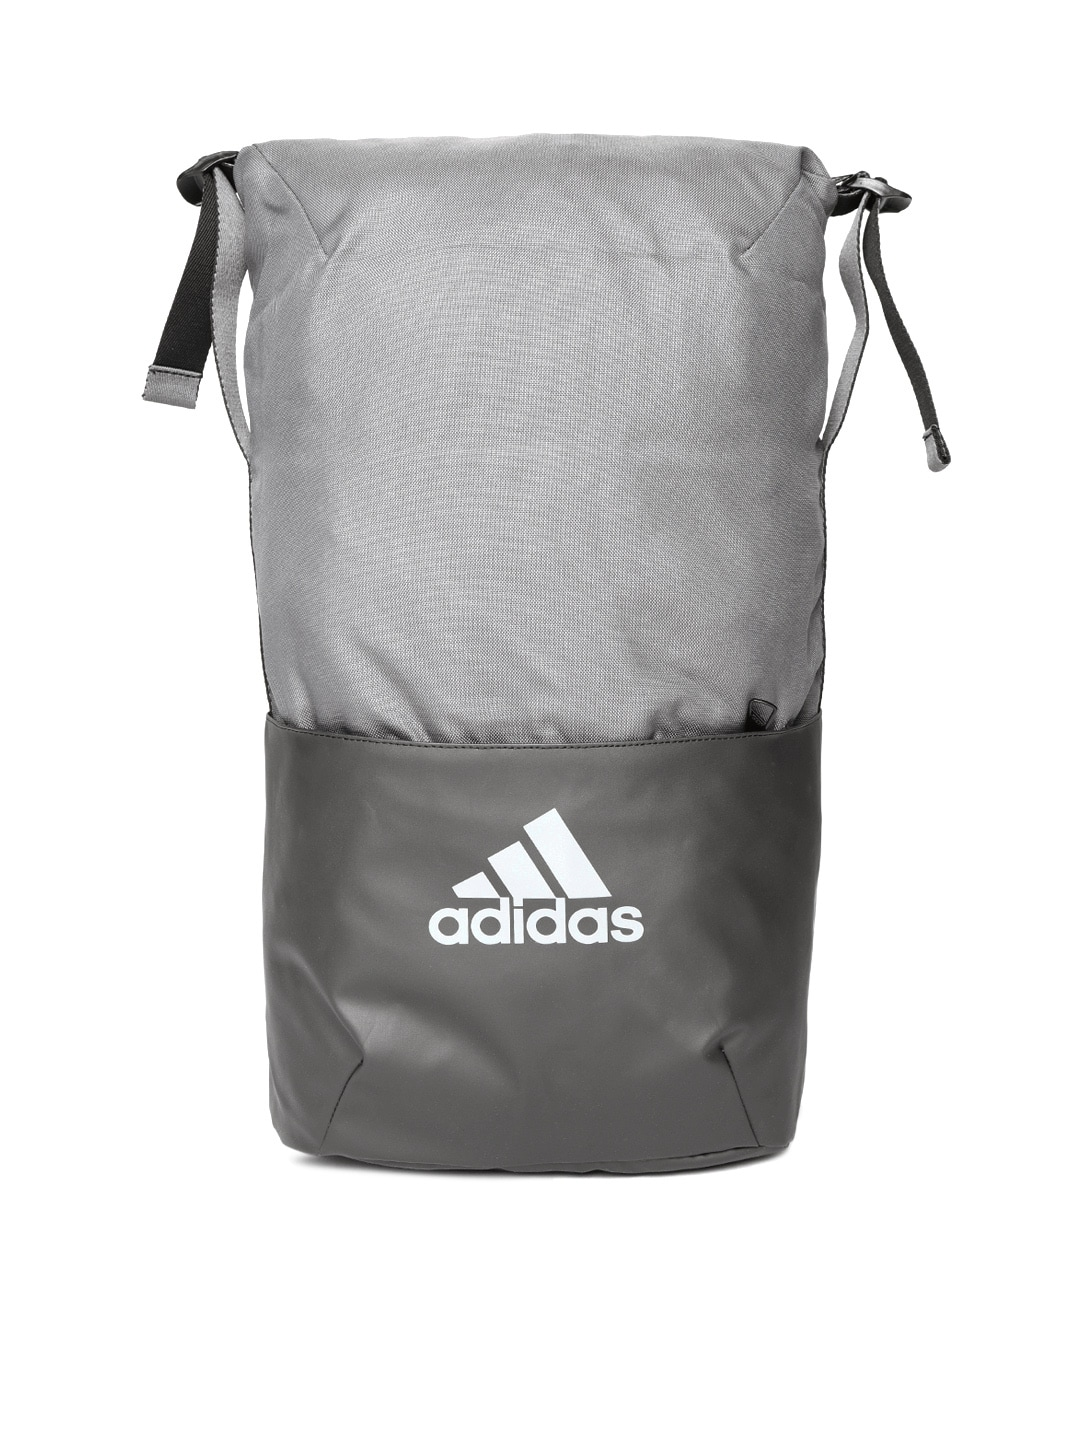 Adidas Backpack Bags - Buy Adidas Backpack Bags online in India 9073fcccc17b6